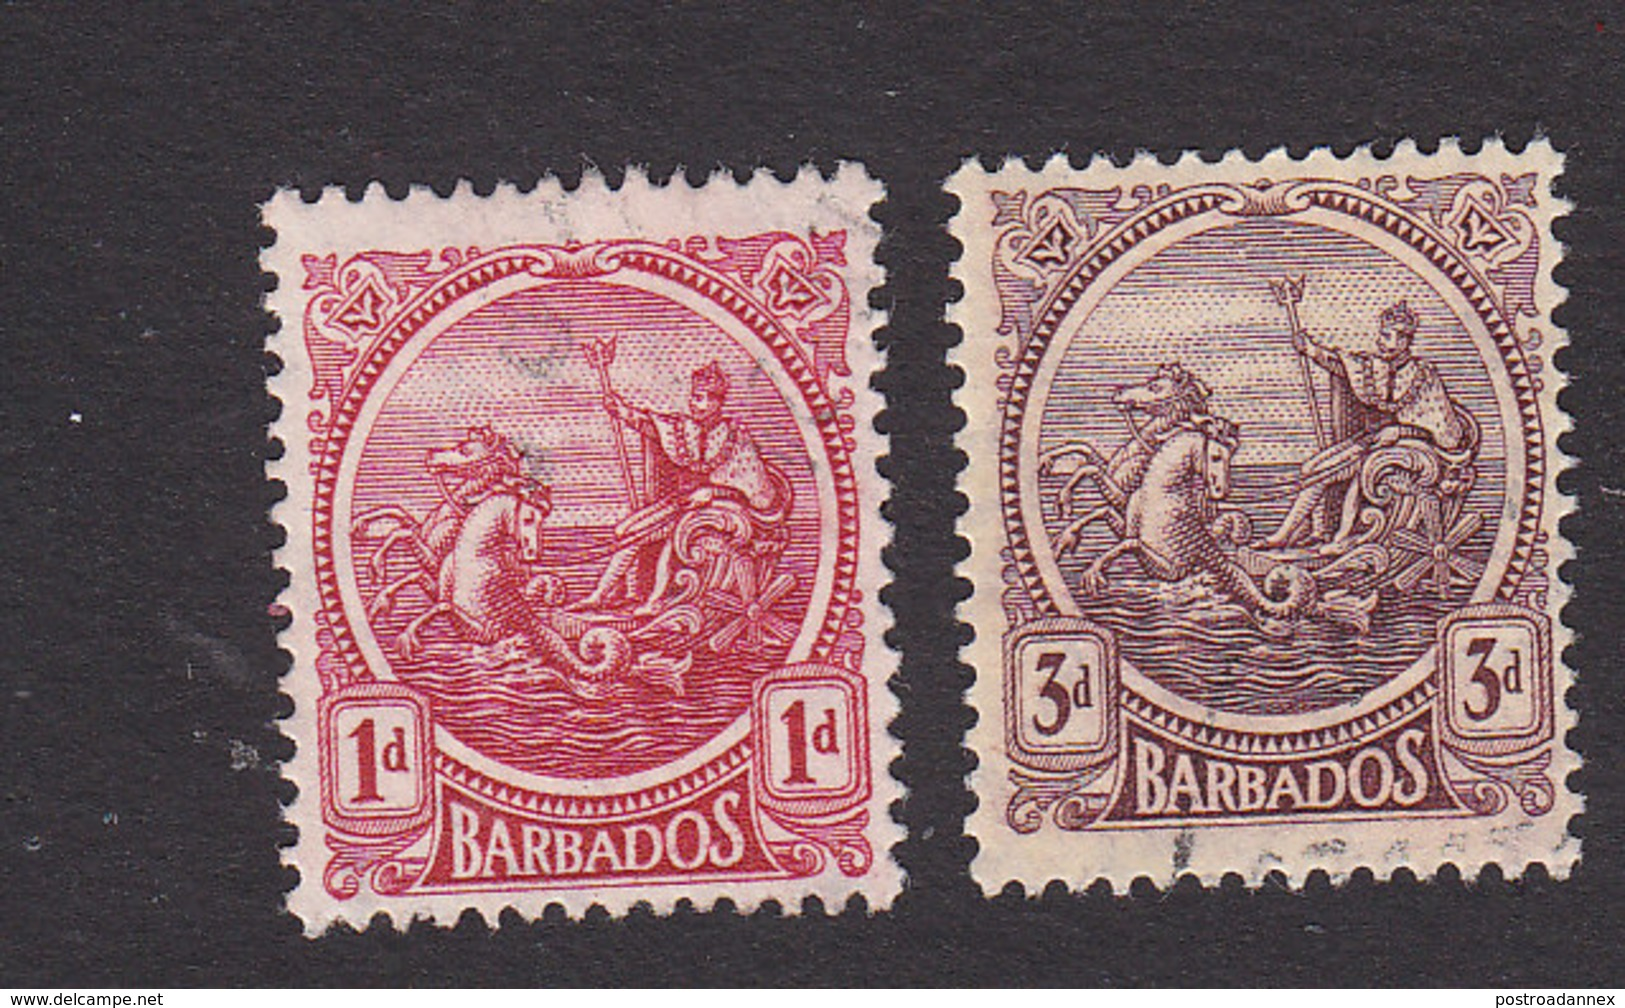 Barbados, Scott #154, 162, Used, Seal Of The Colony, Issued 1921 - Barbados (...-1966)